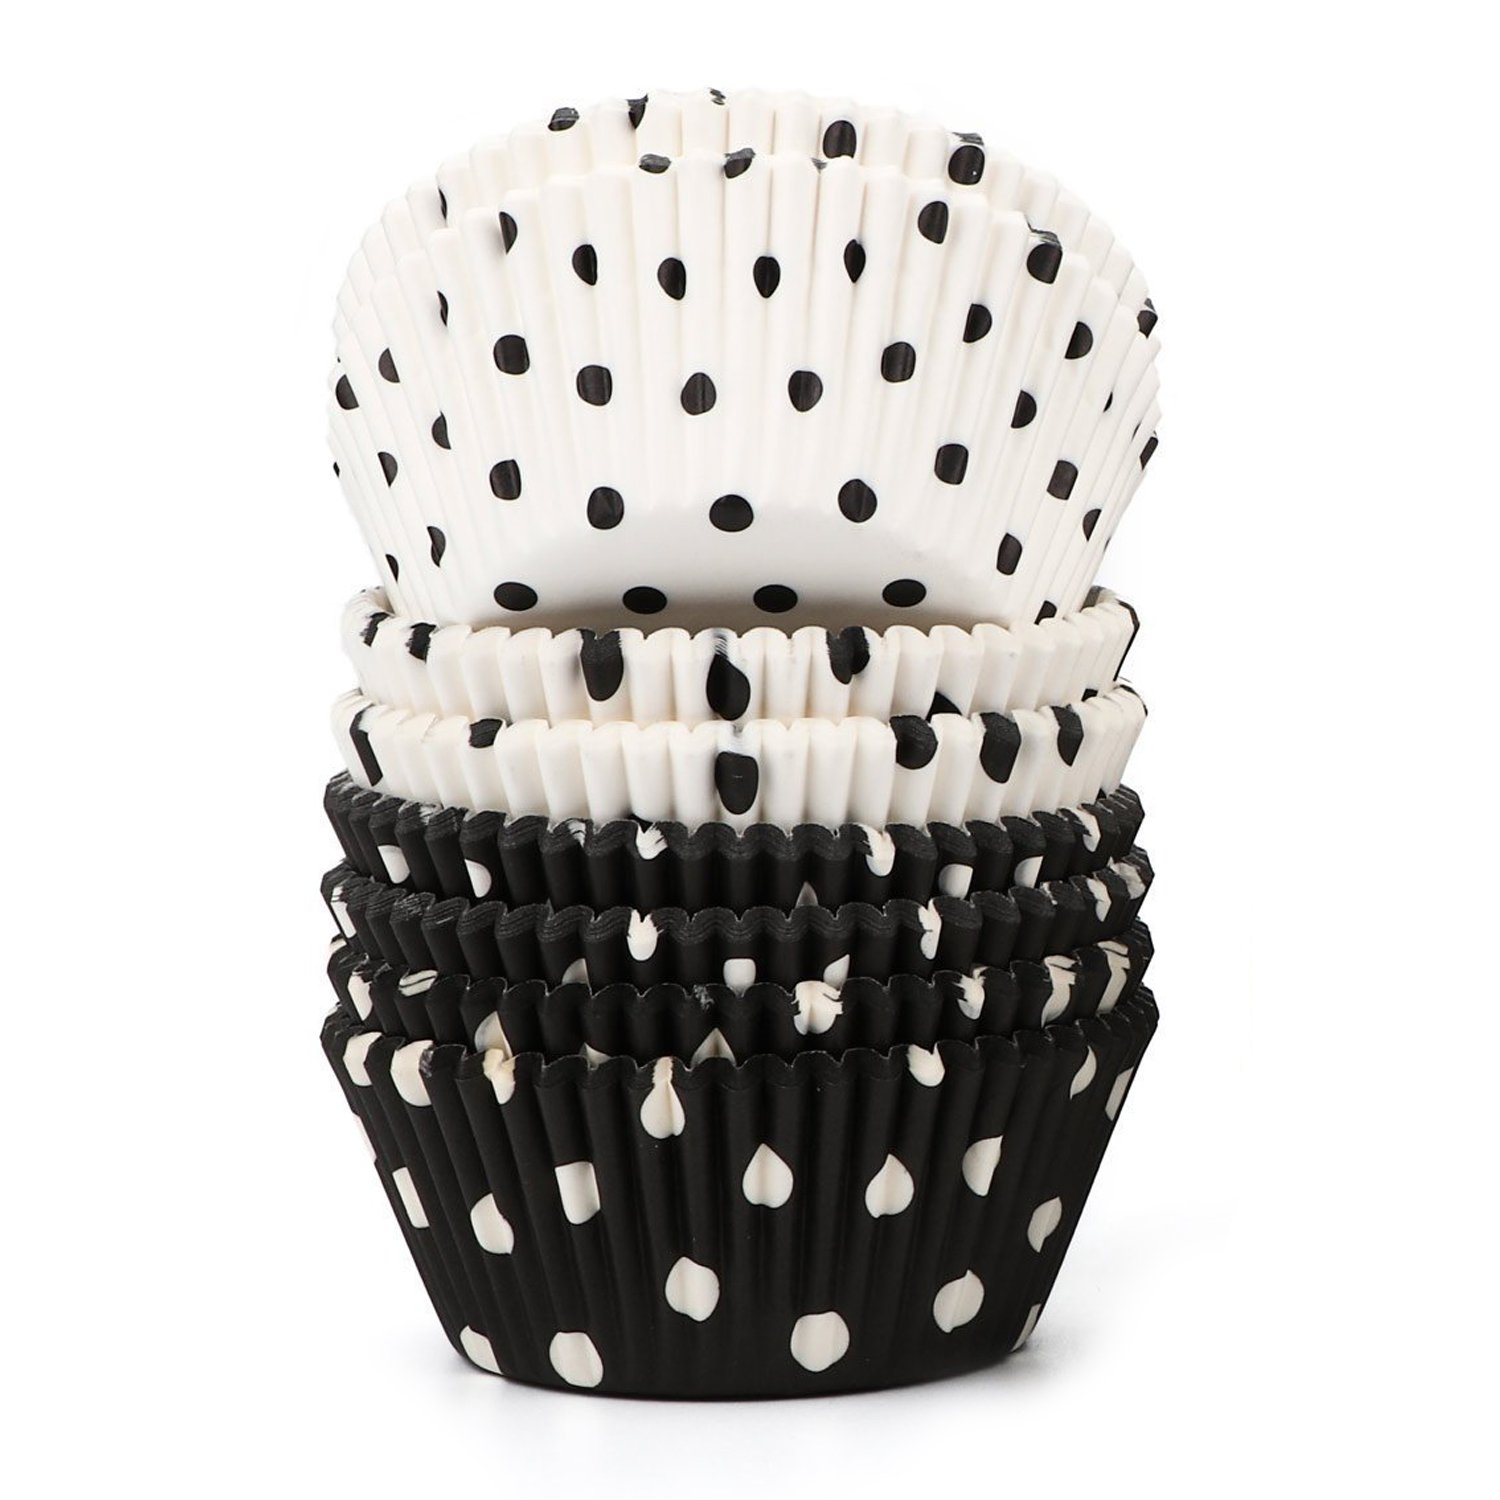 SODIAL 200 Count Polka Dots Black and White Paper Baking Cups / Cupcake Liners Standard Size